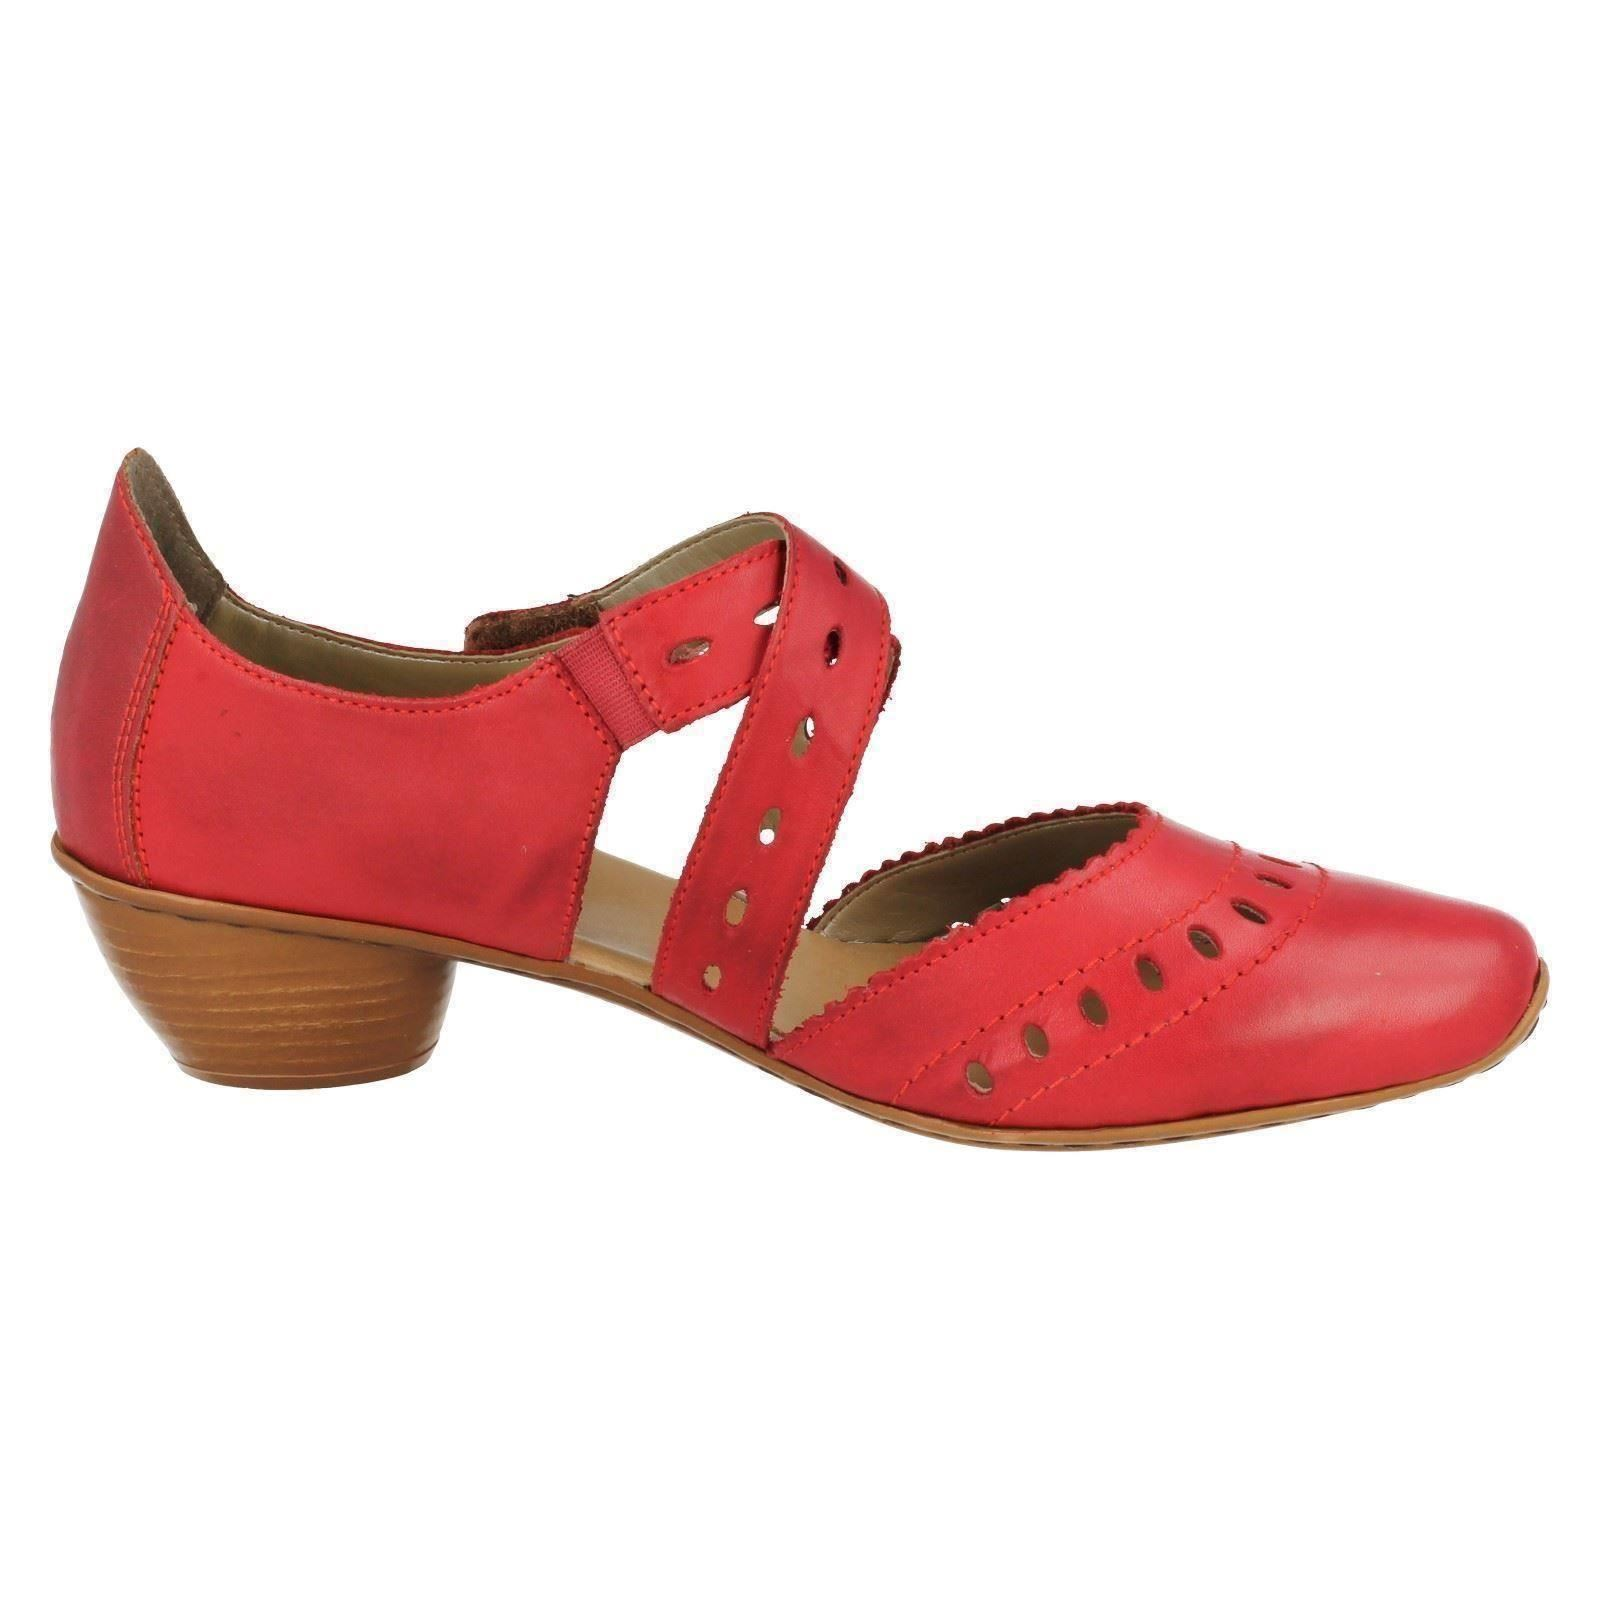 rieker shoes ladies-rieker-shoes-style-43703 ftmvugr